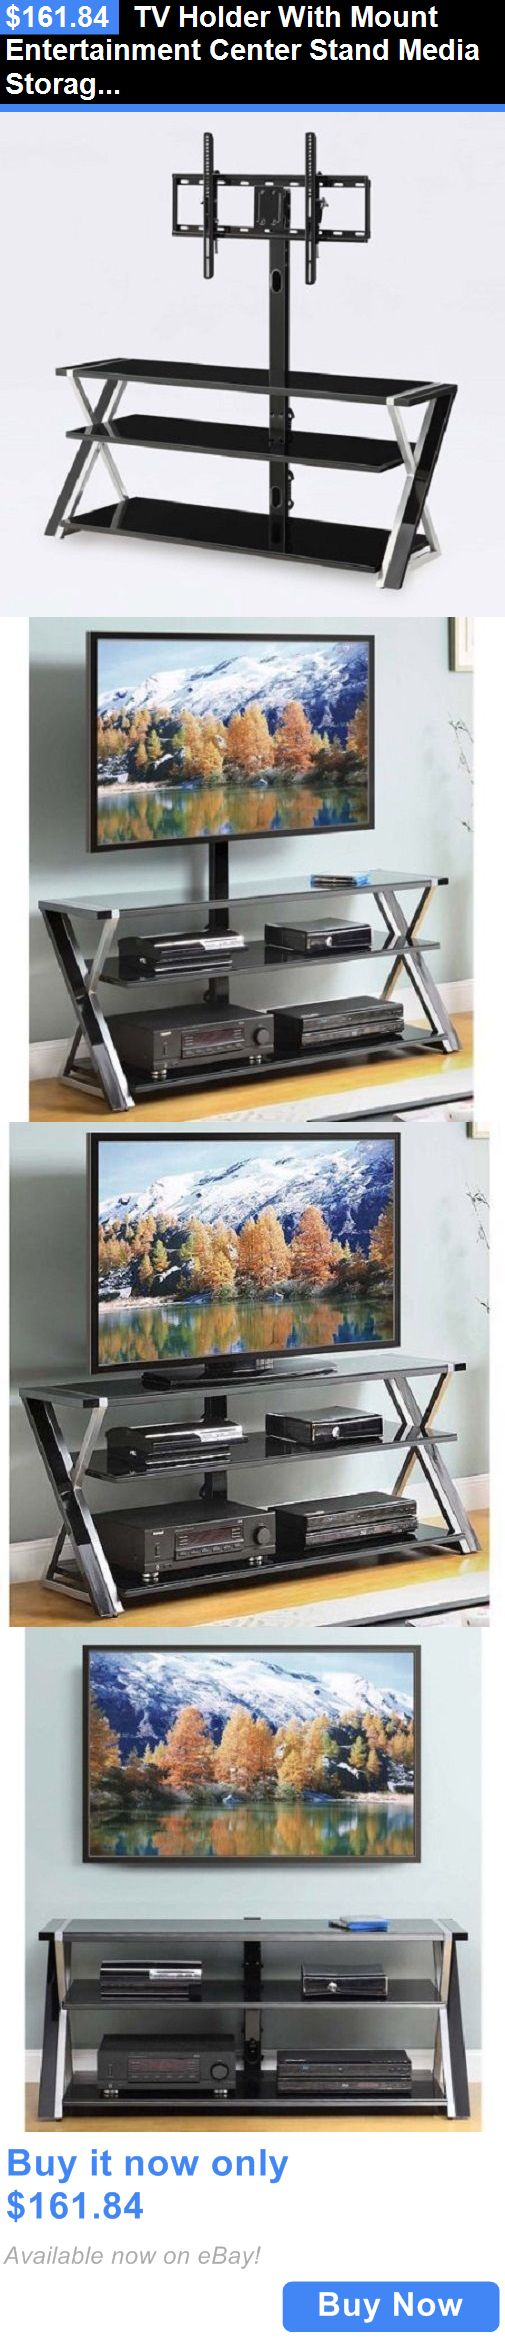 Entertainment Units TV Stands: Tv Holder With Mount Entertainment Center Stand Media Storage Black Modern 70 BUY IT NOW ONLY: $161.84